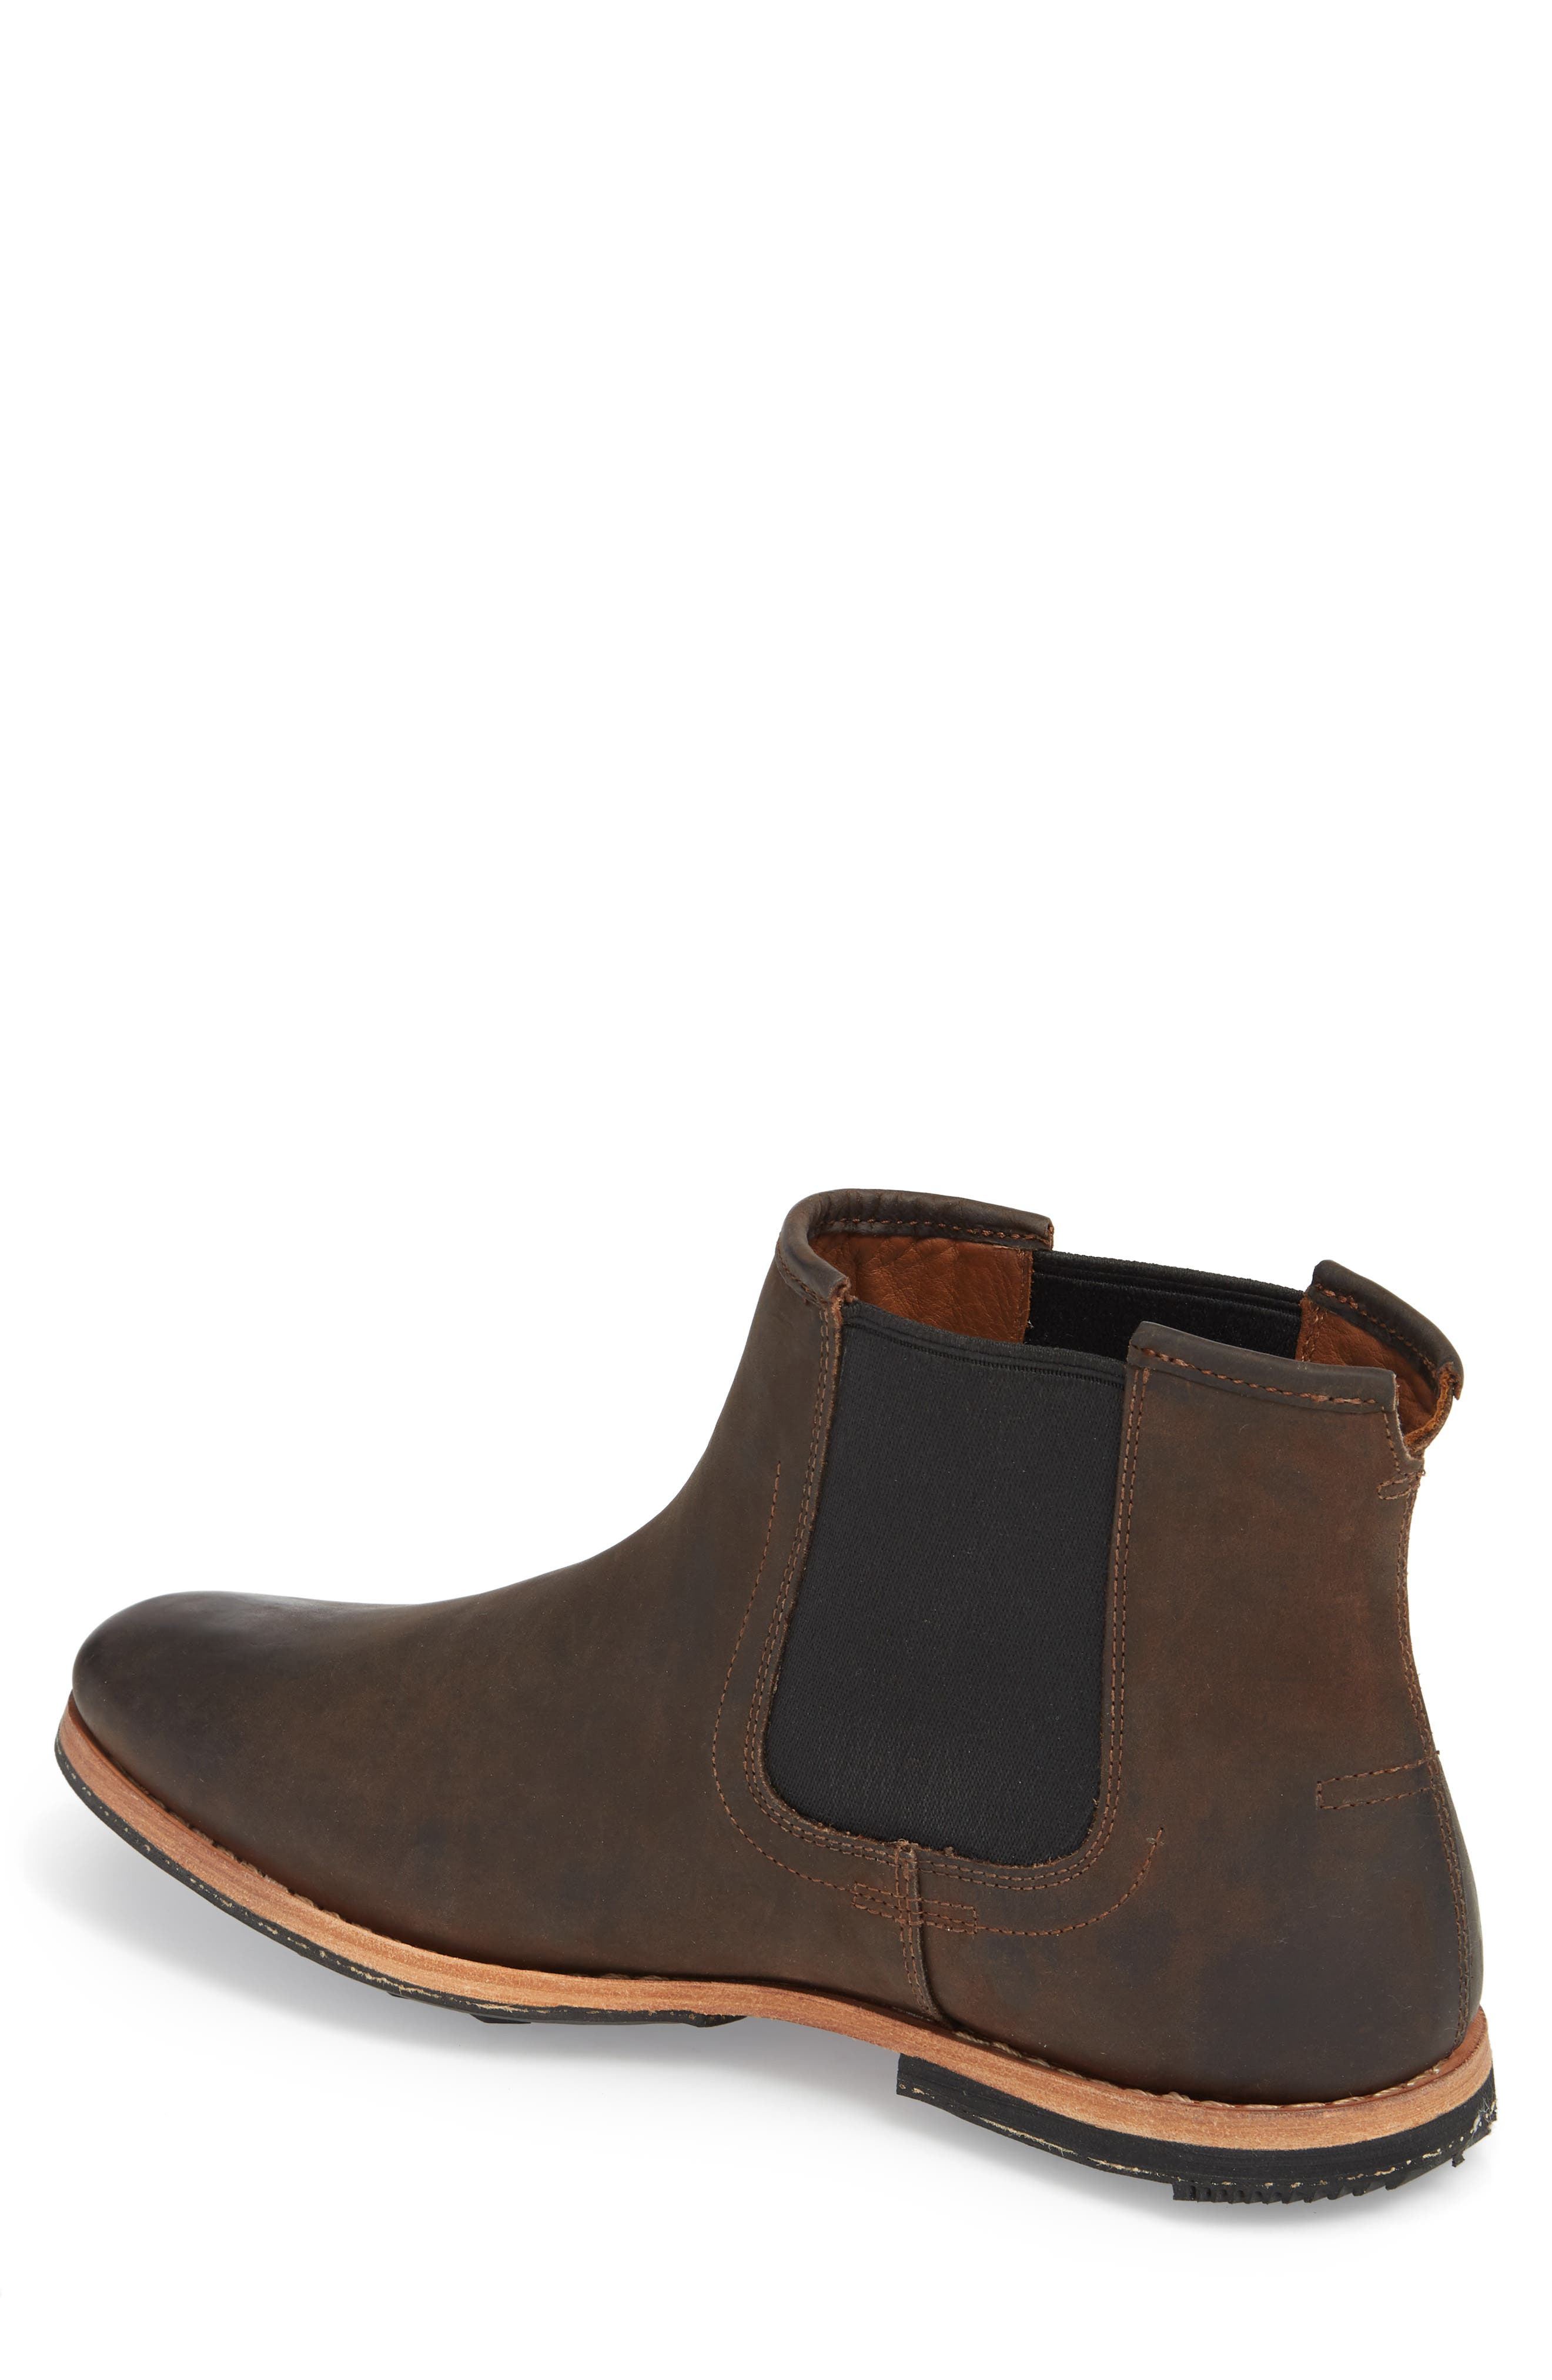 Wodehouse History Chelsea Boot,                             Alternate thumbnail 2, color,                             BROWN LEATHER